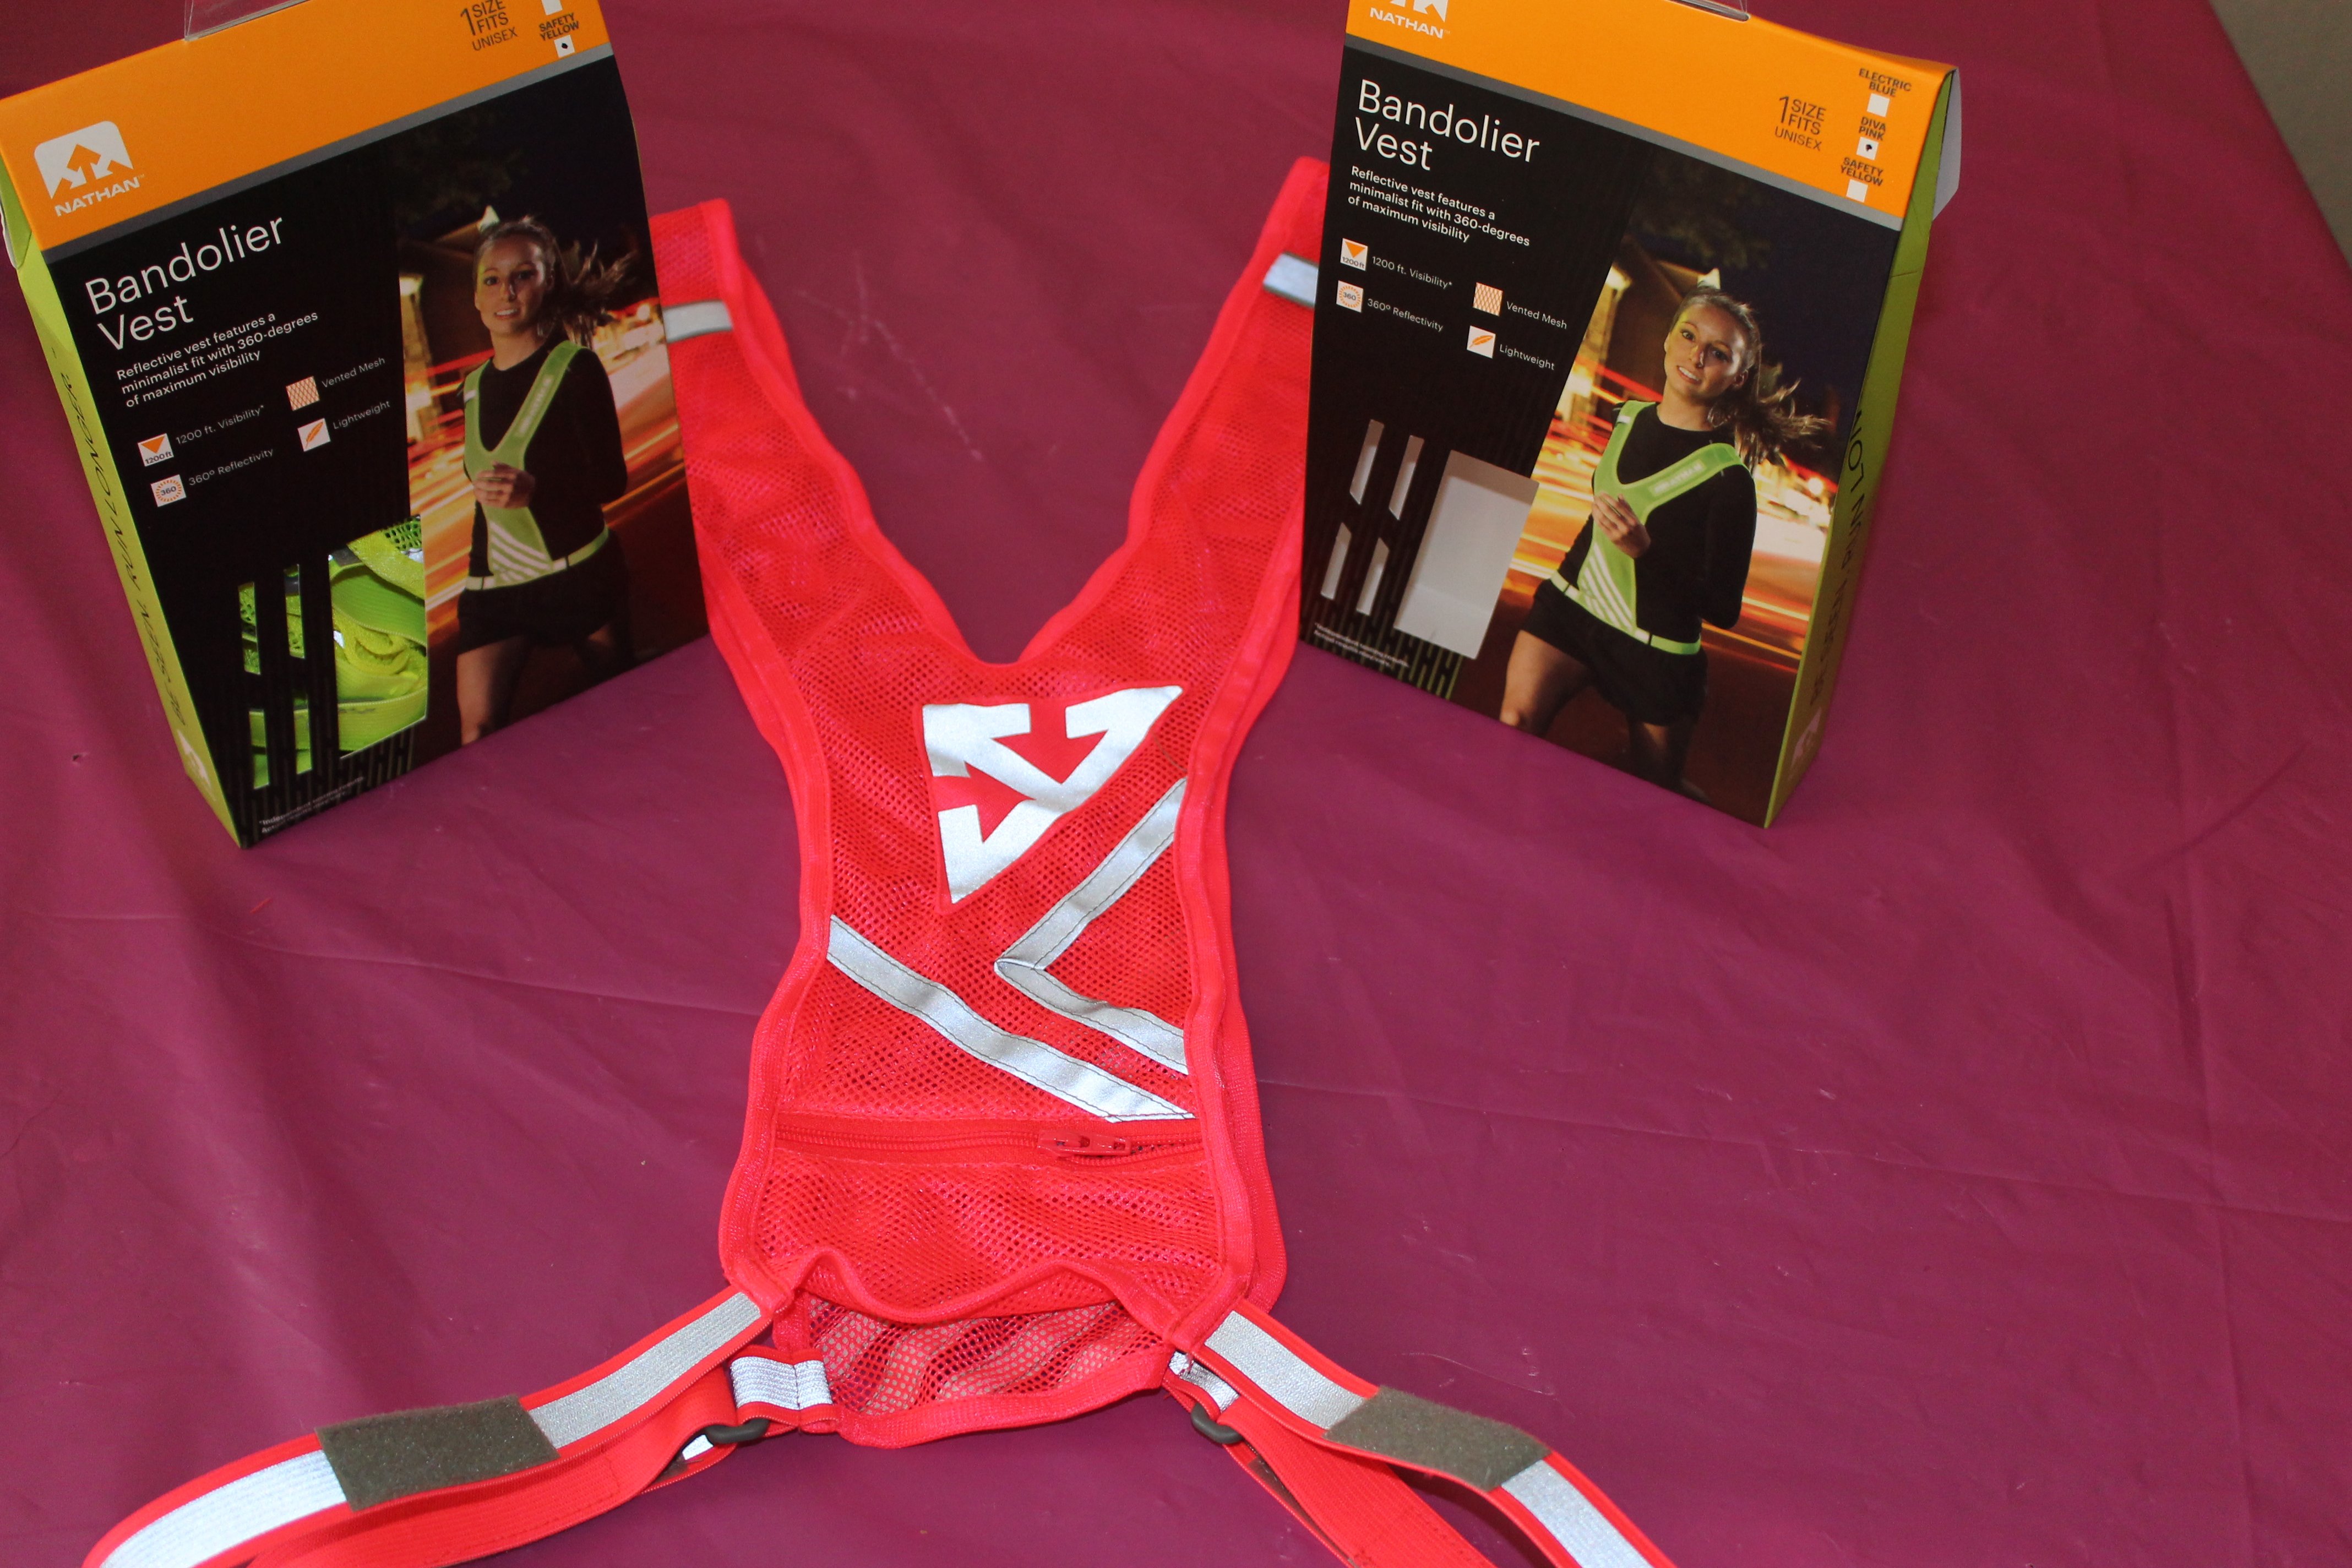 Nathan Bandolier Reflective Vest, don't leave home without it!